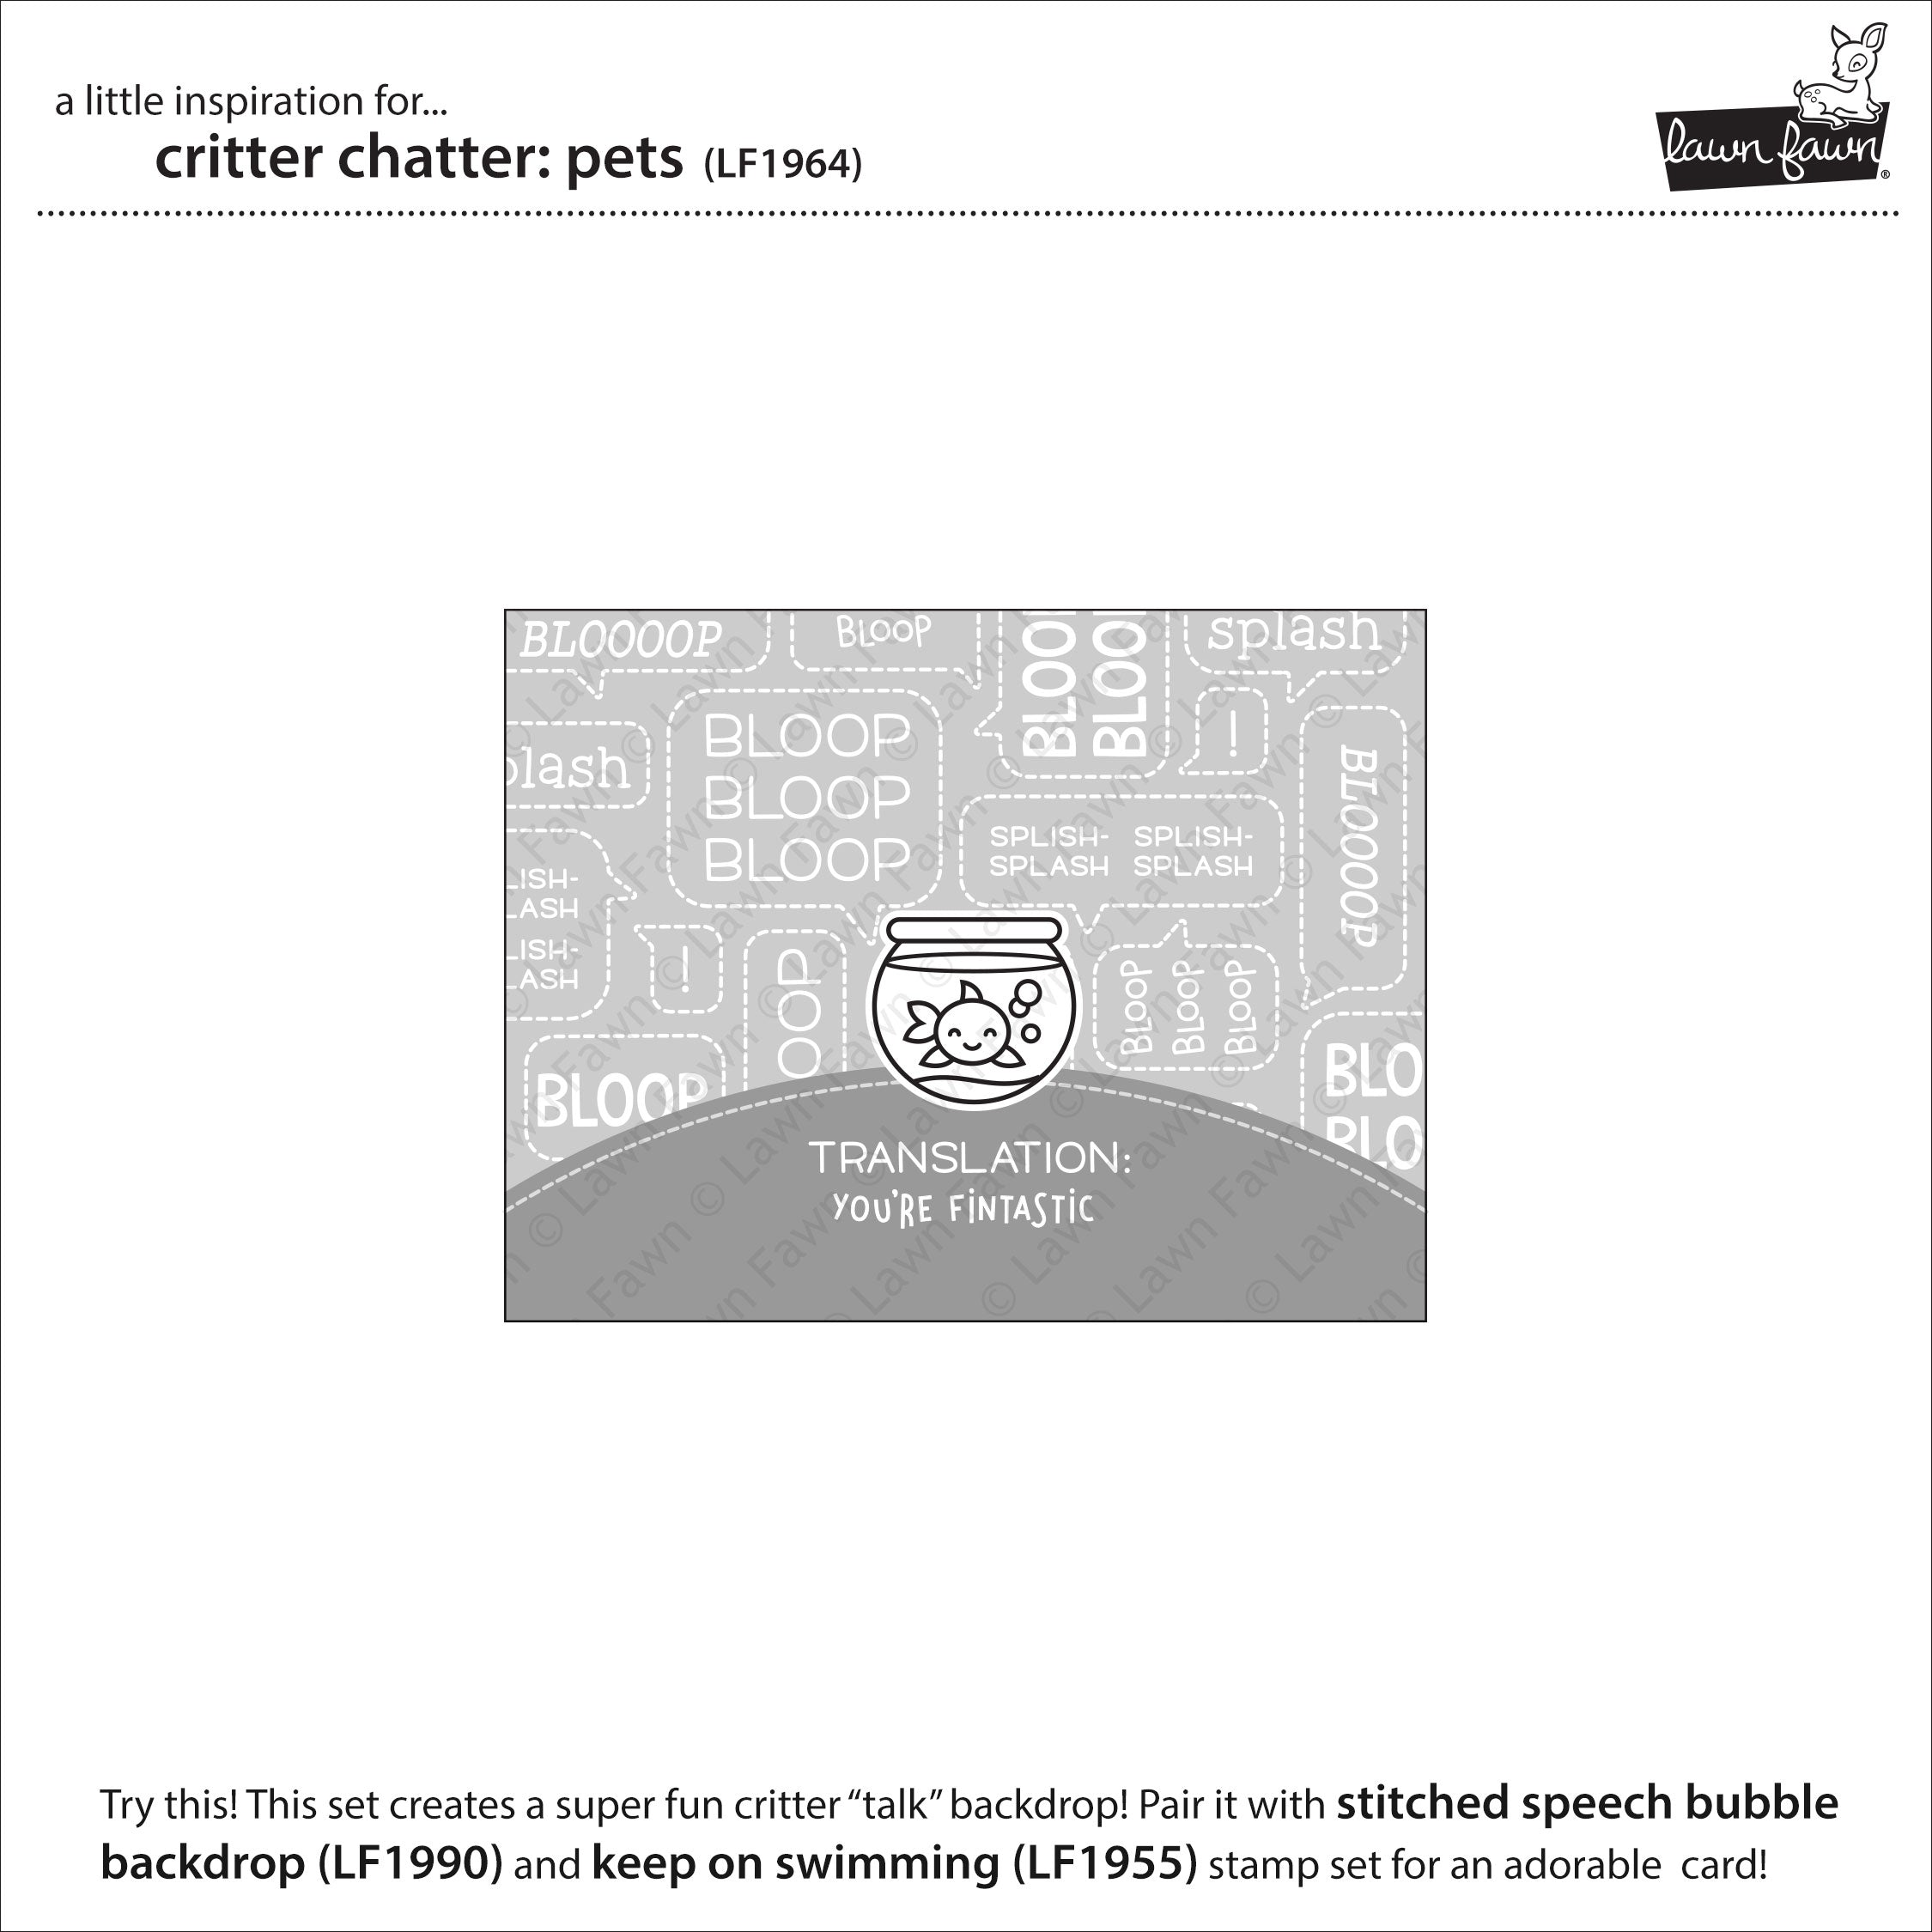 critter chatter: pets